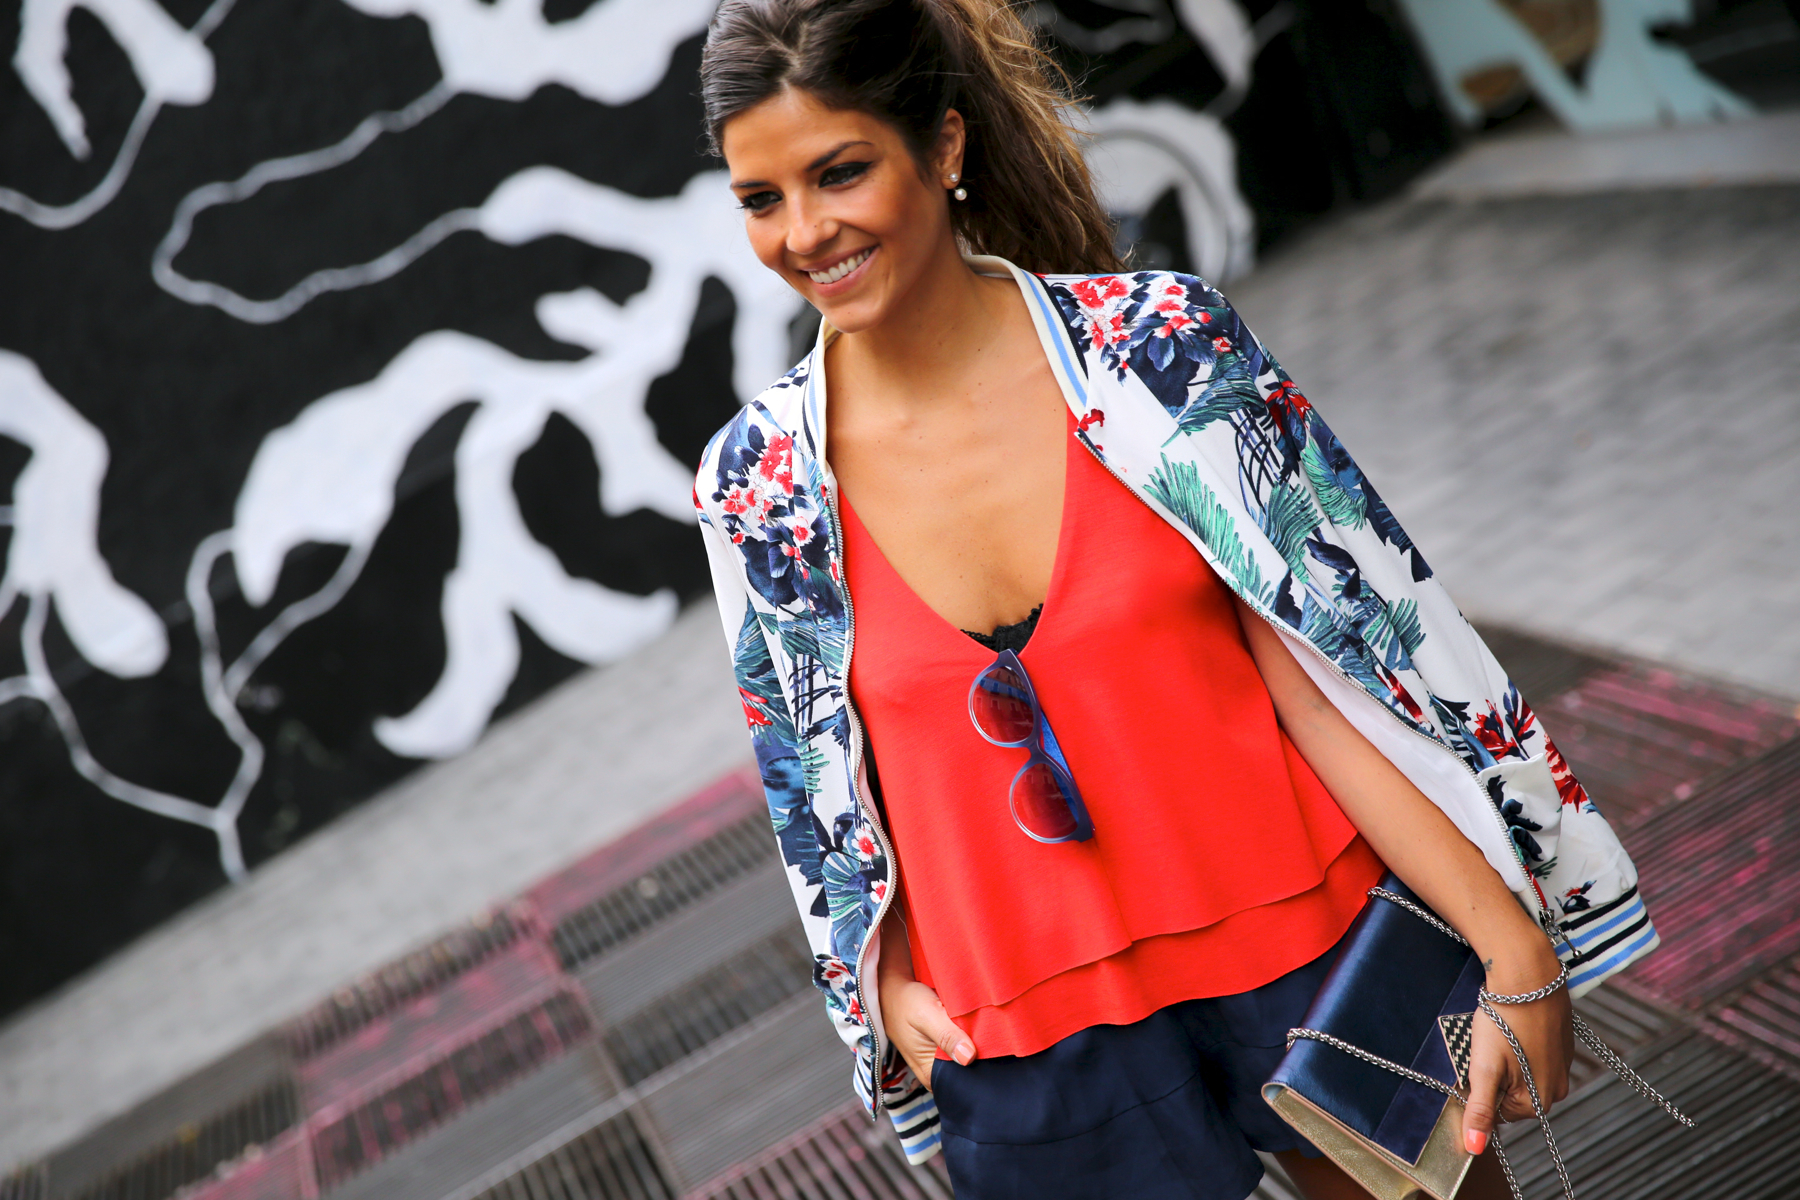 trendy_taste-look-outfit-street_style-ootd-blog-blogger-fashion_spain-moda_españa-sneakers-saucony_originals-sport-trainers-zapas-tommy_hilfiger-sunnies-red_top-top_rojo-bomber_flores-8